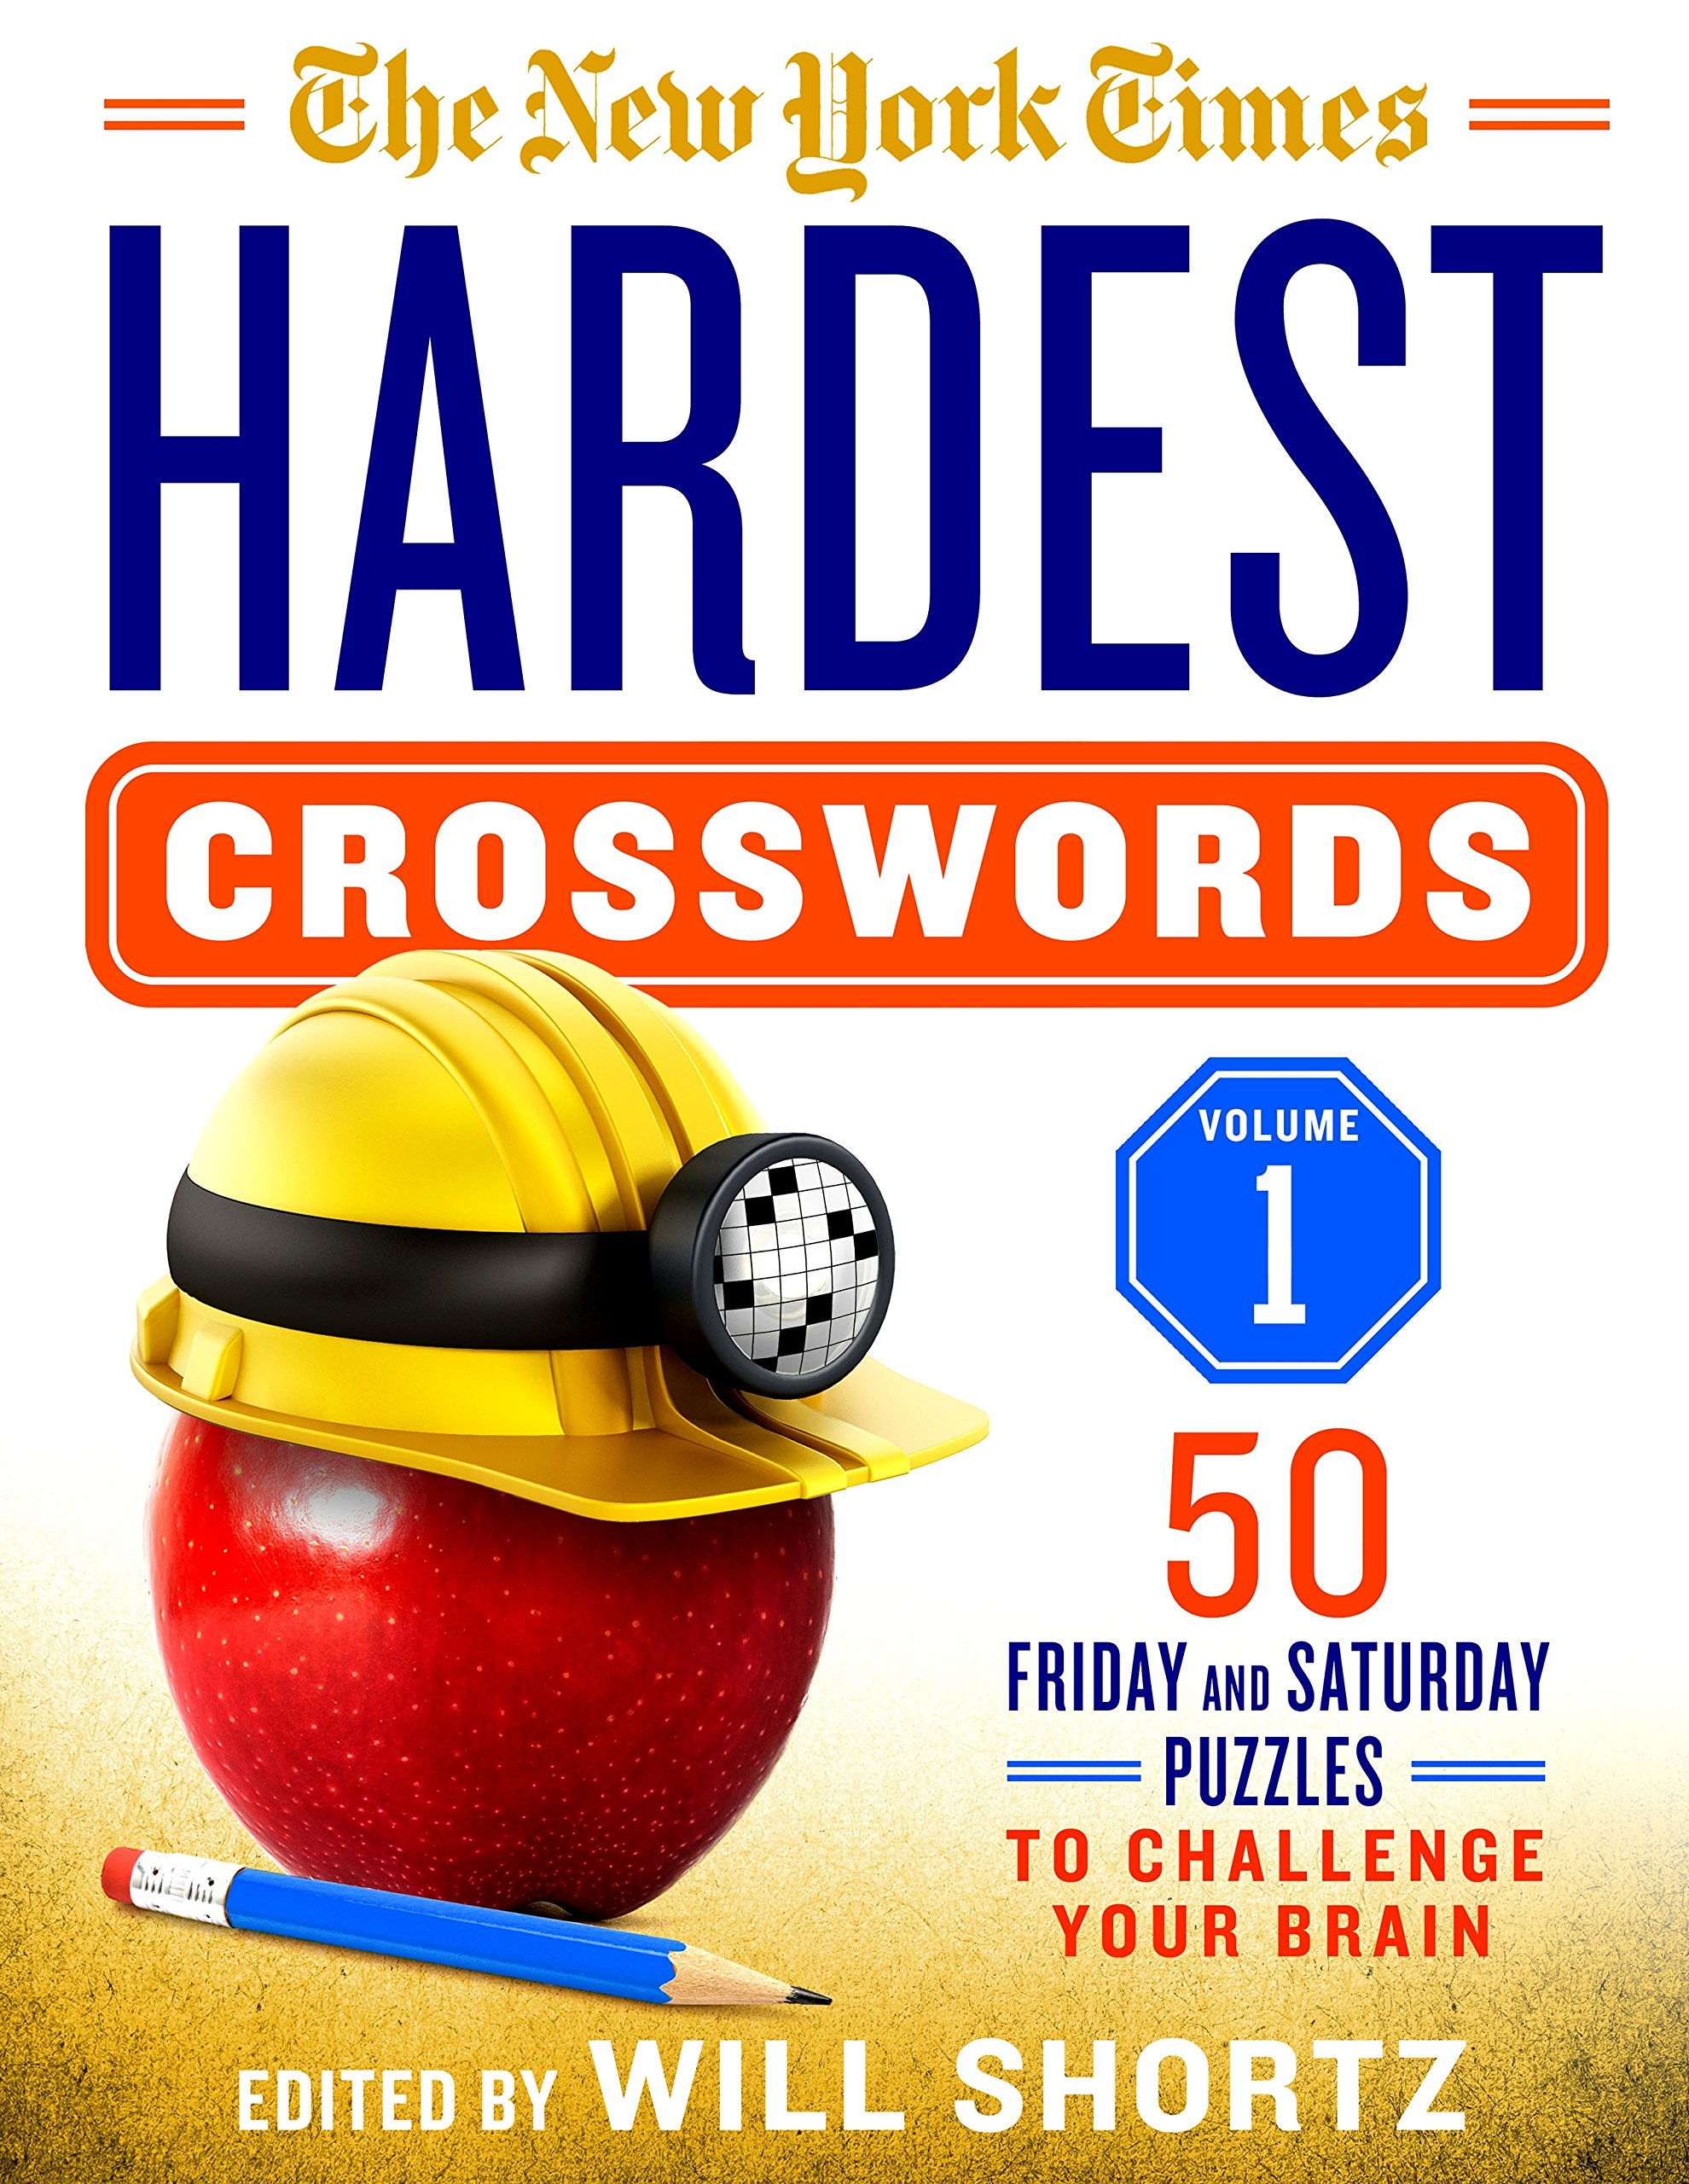 photograph about Worlds Hardest Crossword Puzzle Printable named The Refreshing York Days Most difficult Crosswords Total 1: 50 Friday